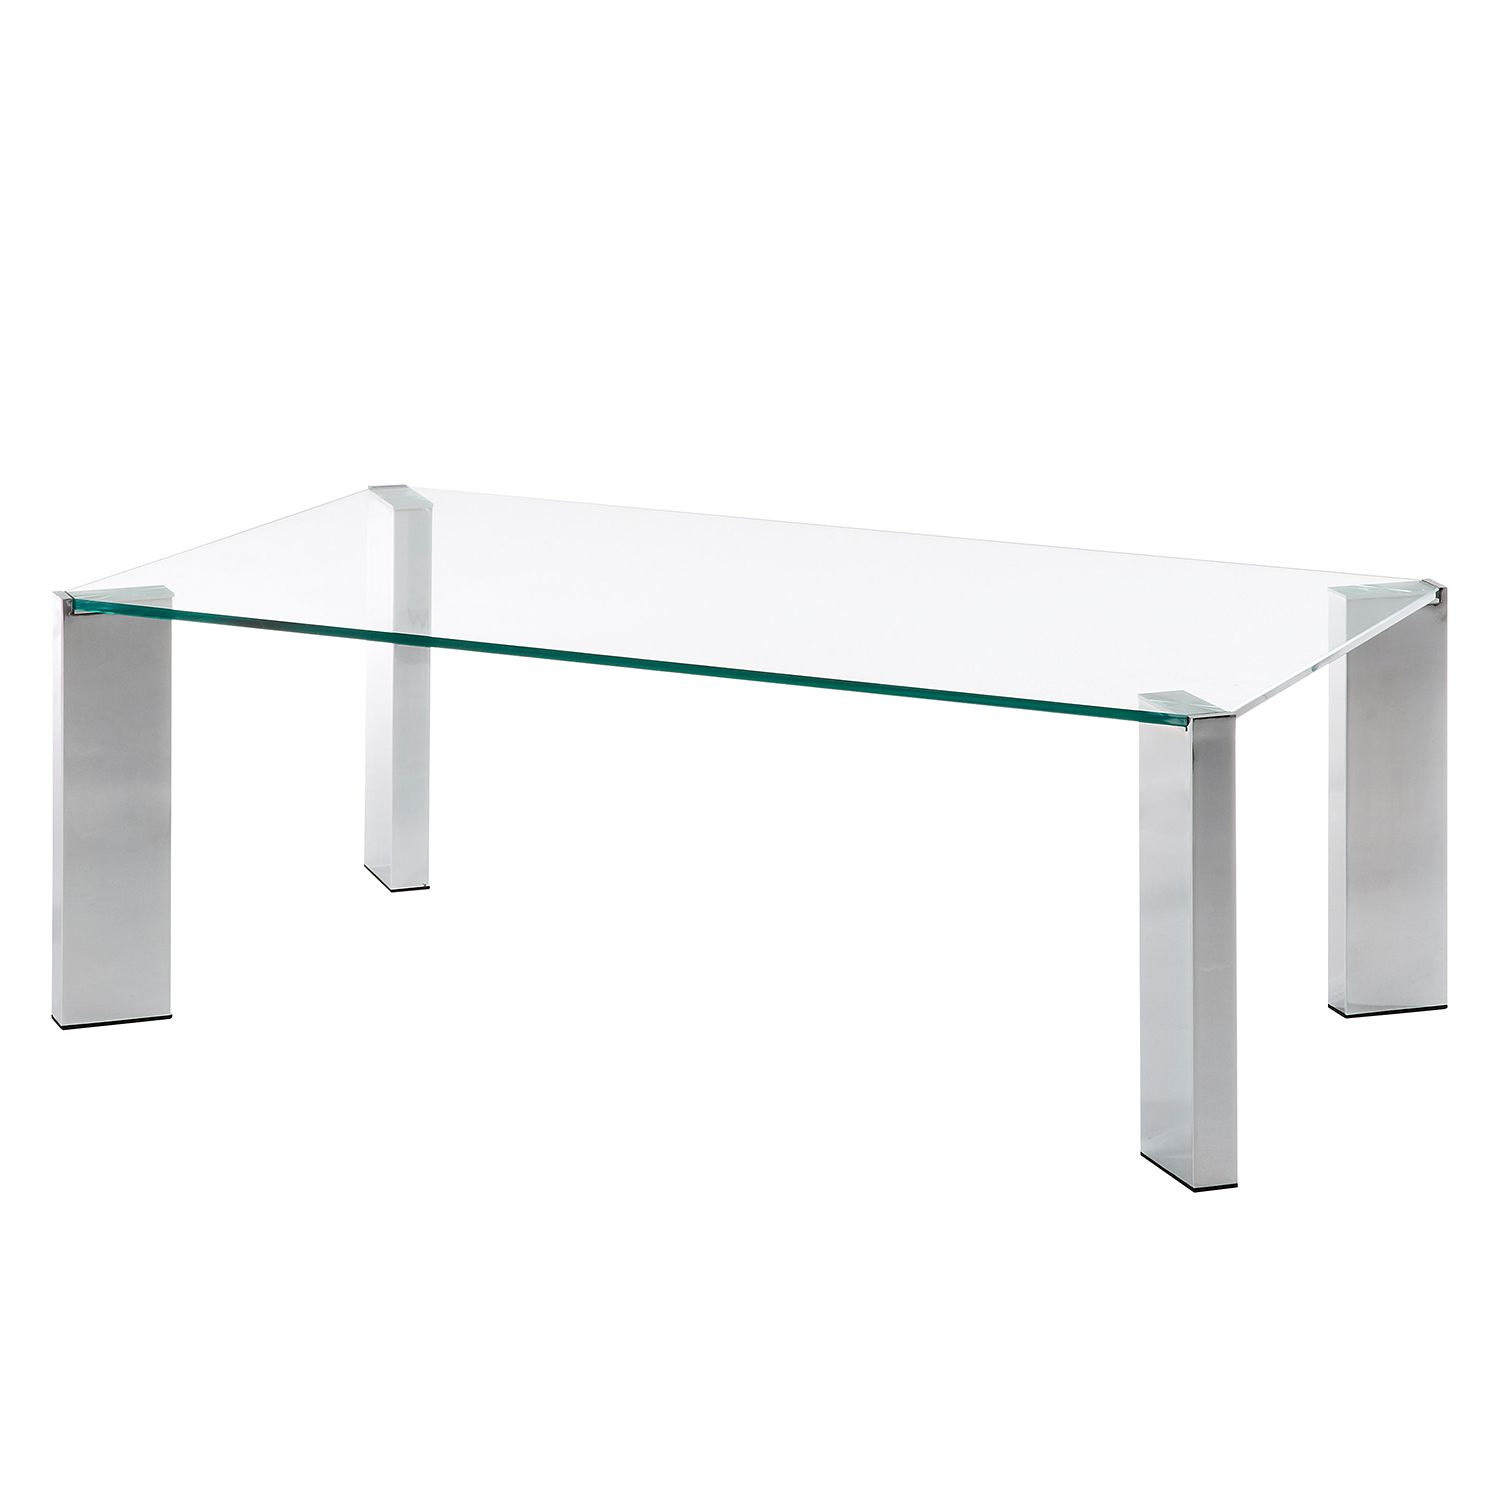 Table basse Liberotto - Verre / Acier - Chrome, Morteens